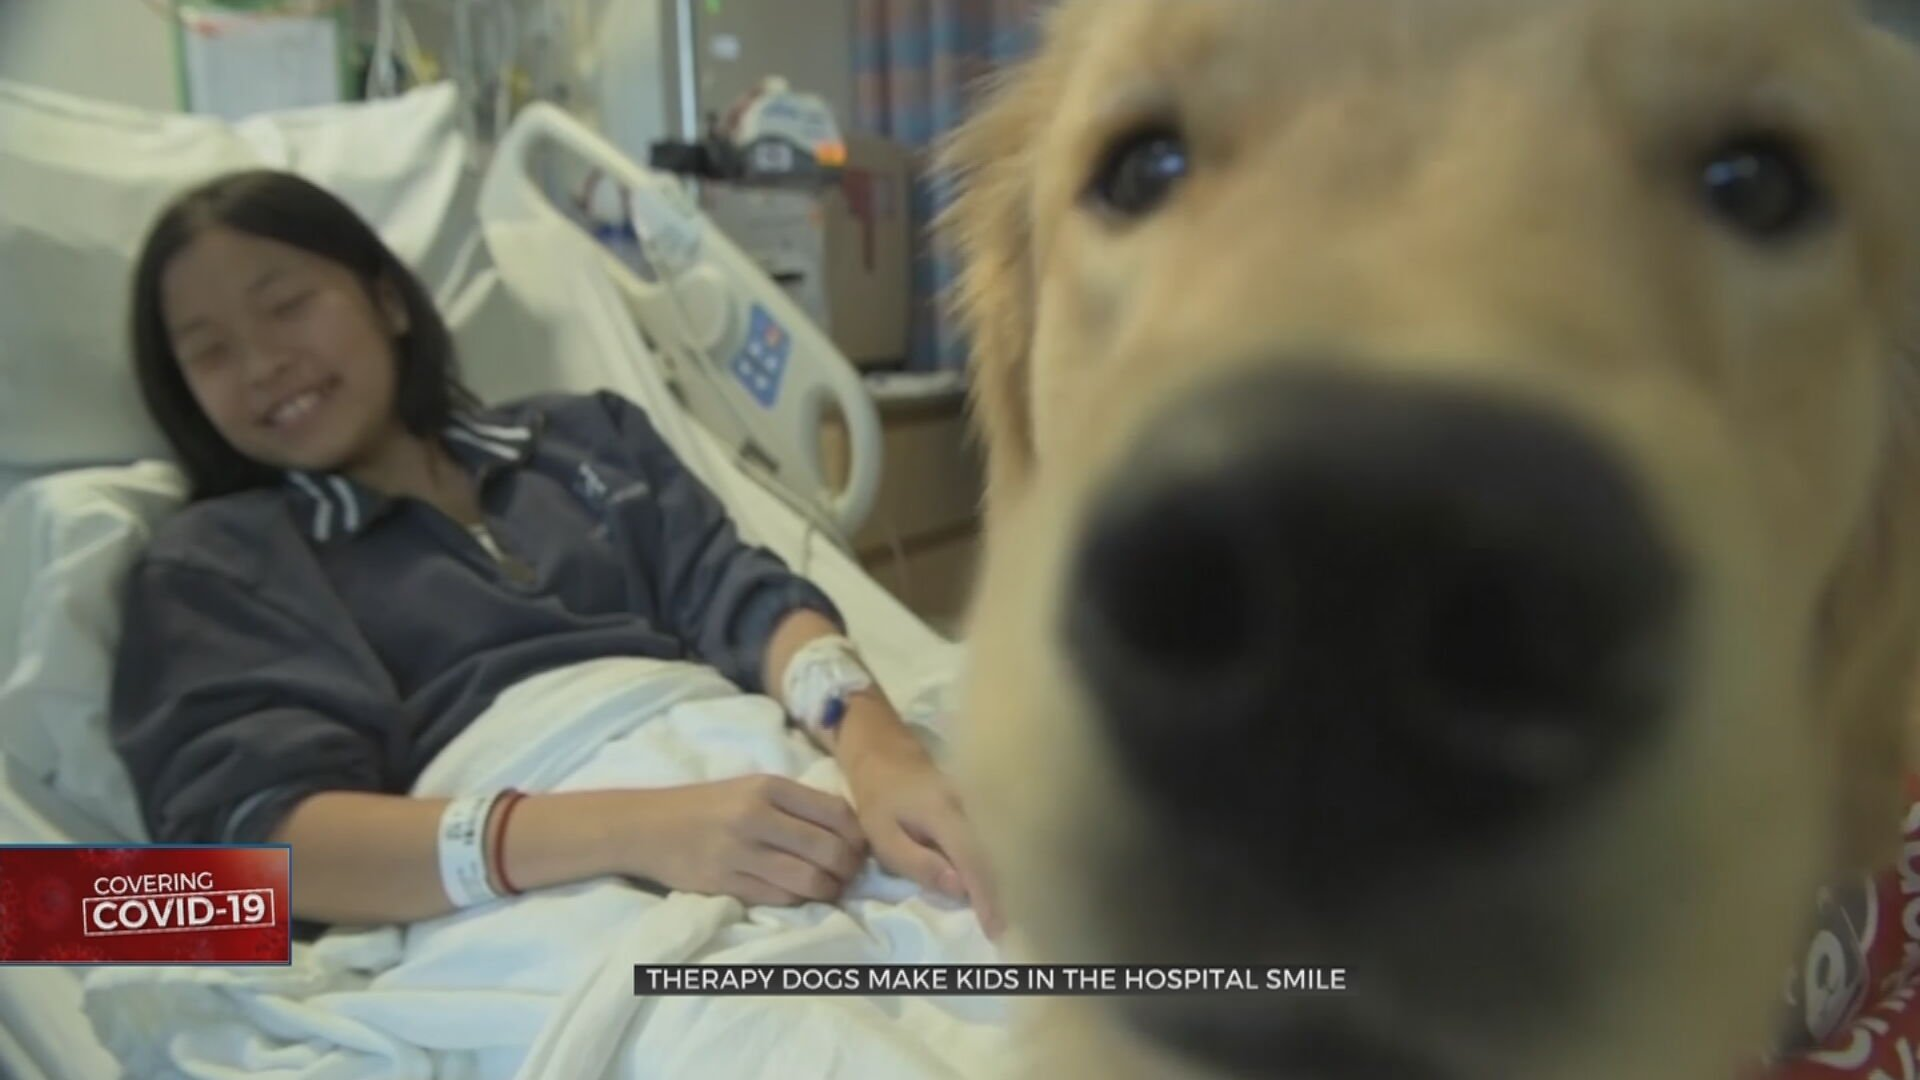 During Pandemic, Therapy Dogs Bring Smiles To Kids In Hospital